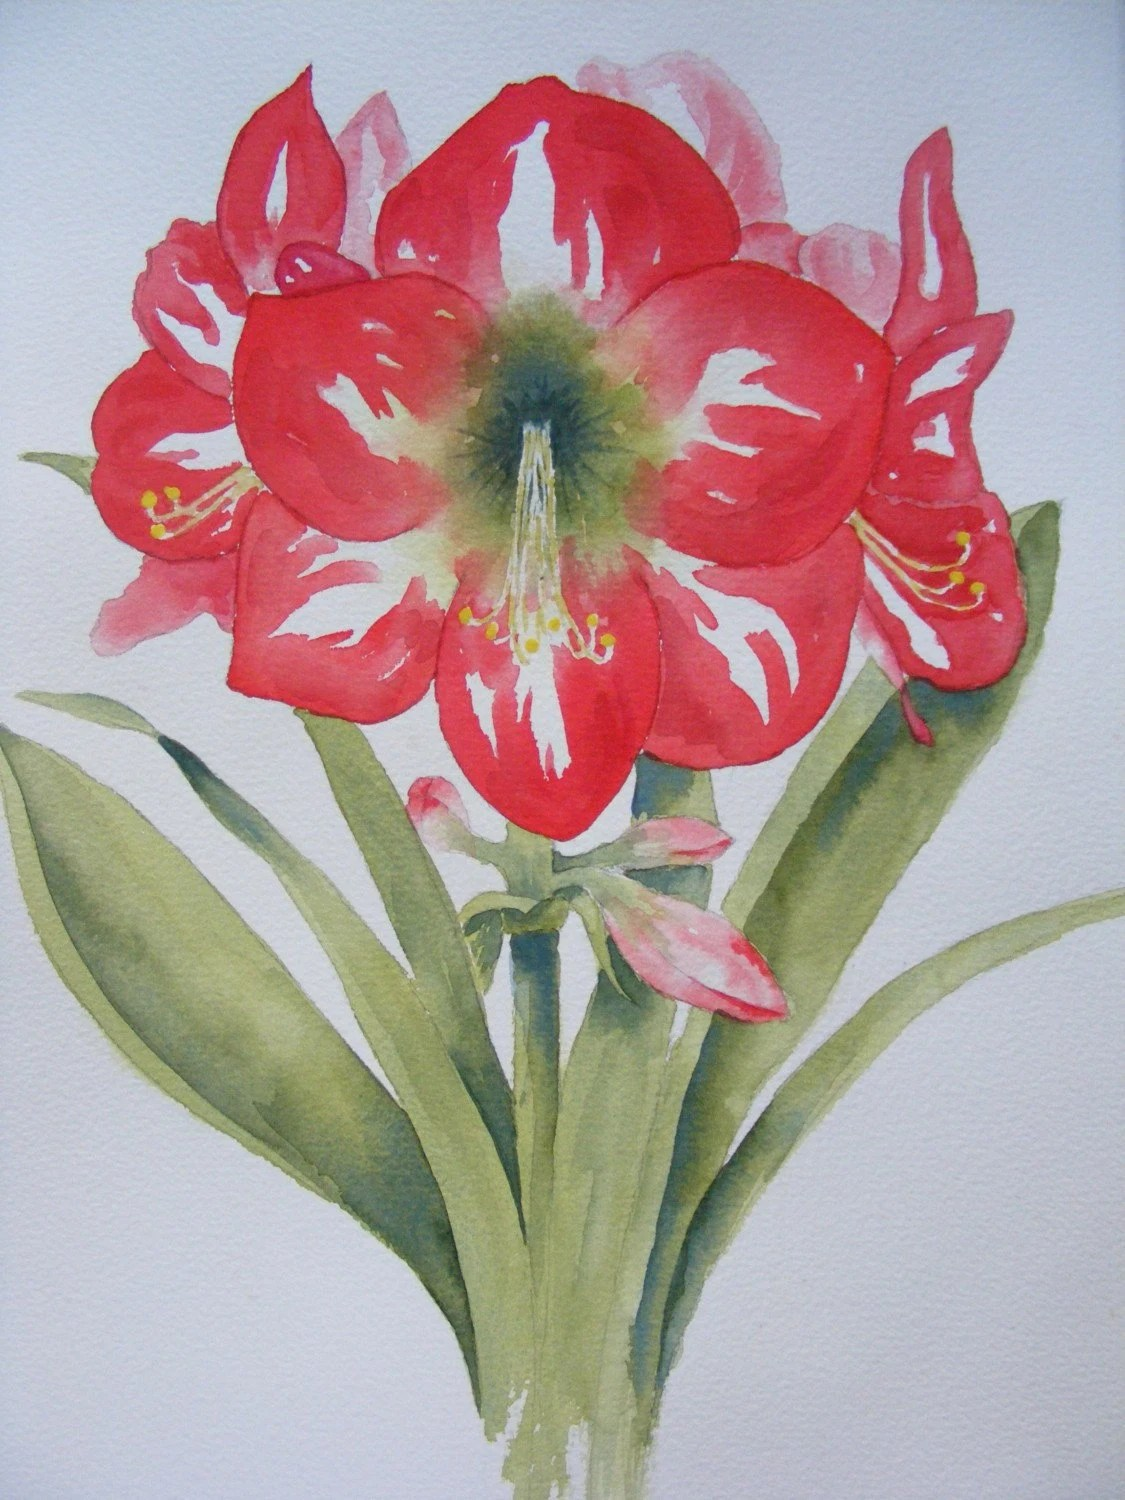 Christmas Amaryllis Reproduction Of Watercolor Painting Red